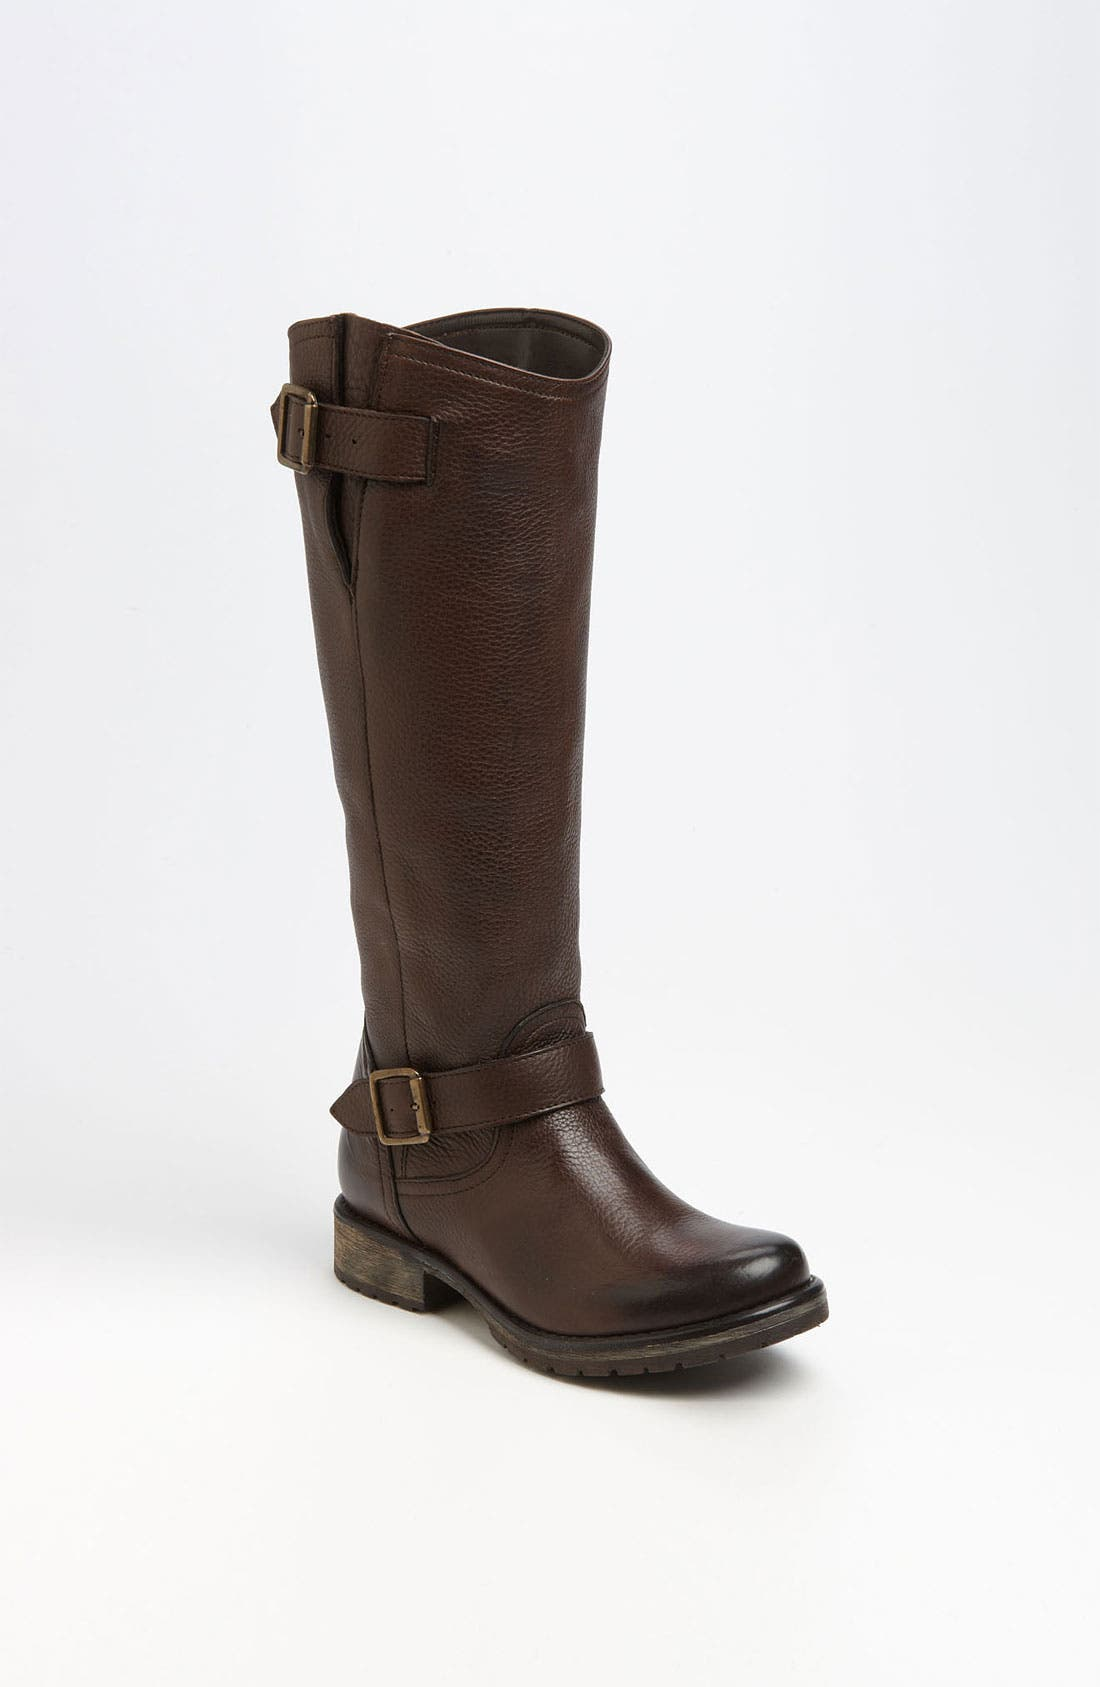 Alternate Image 1 Selected - Steve Madden 'Fairmont' Boot